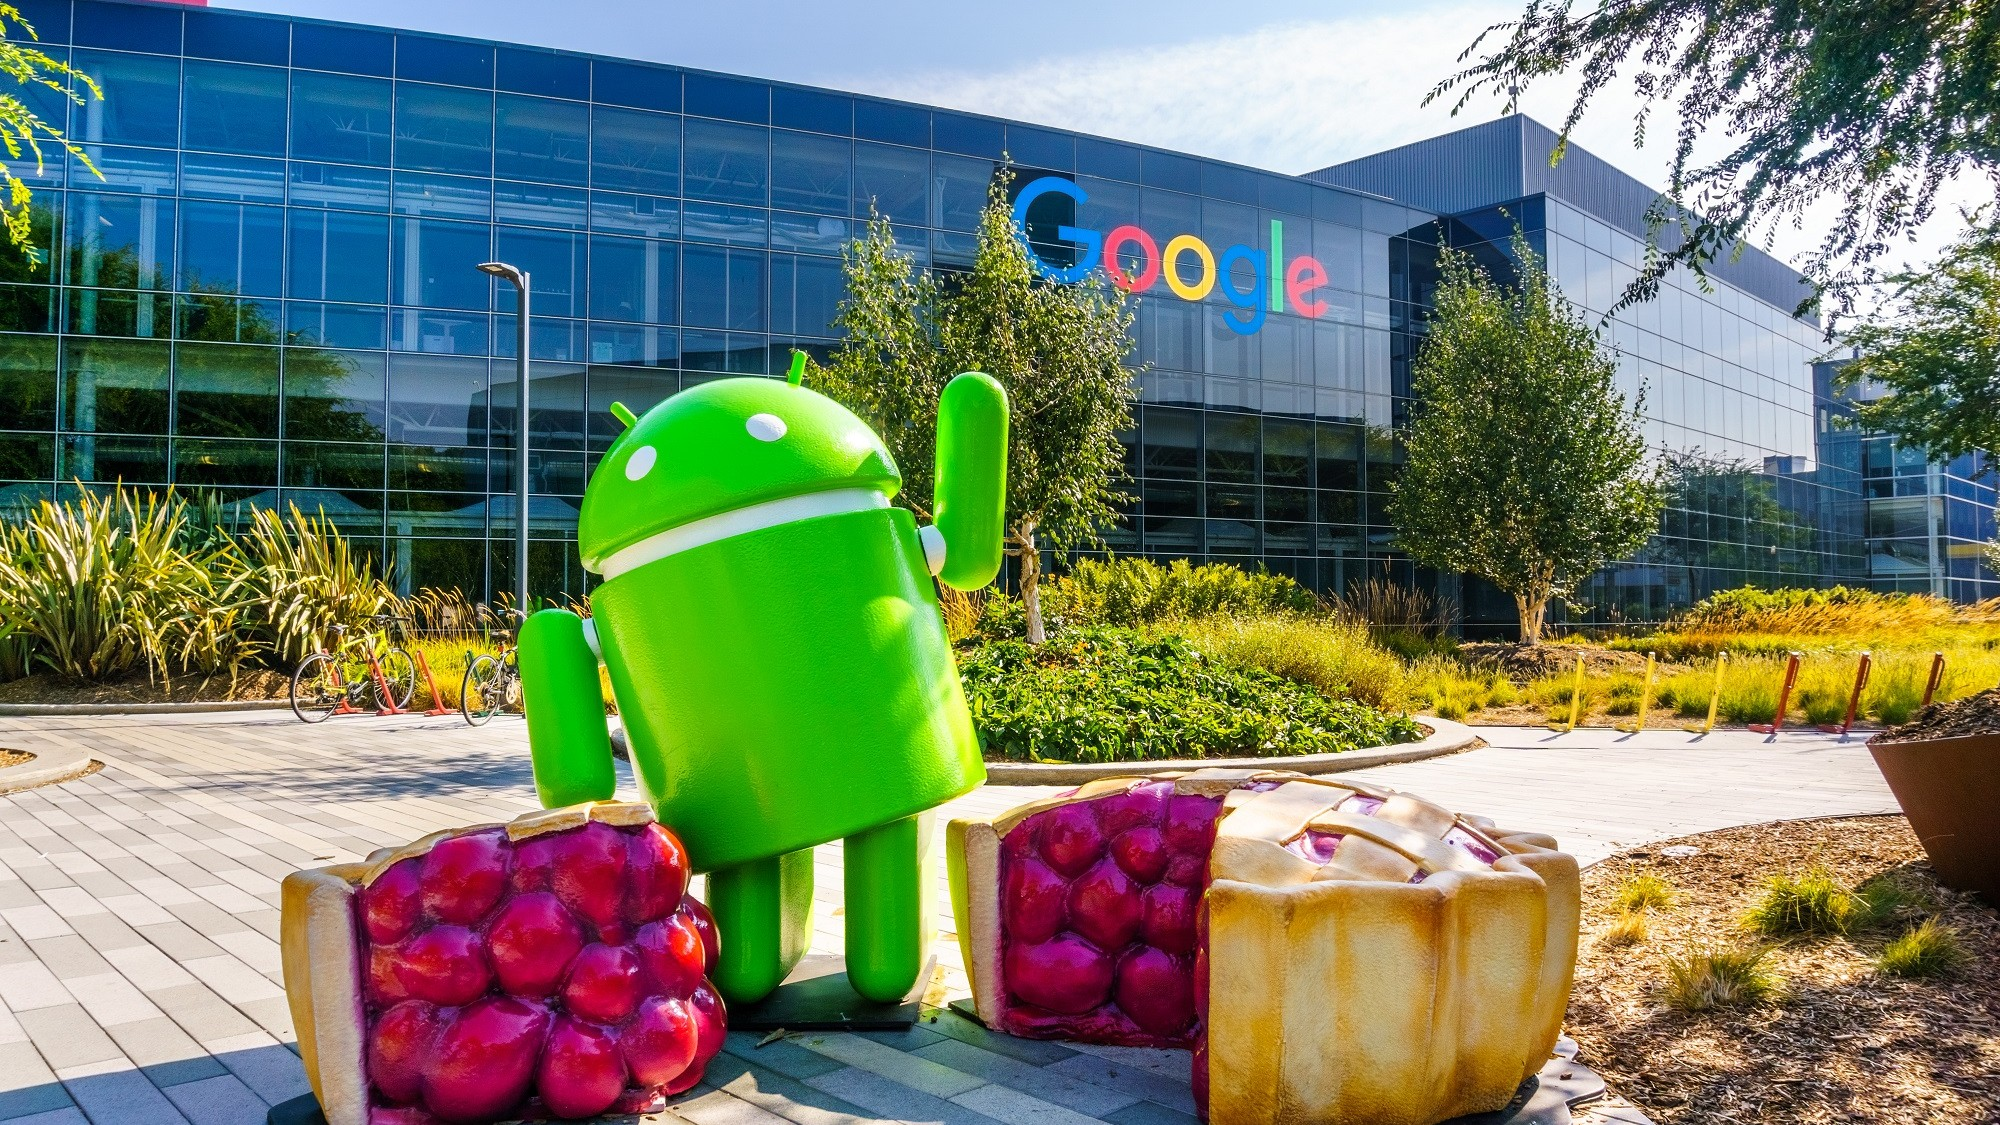 Head of Android Security Says Locking Out Law Enforcement Is